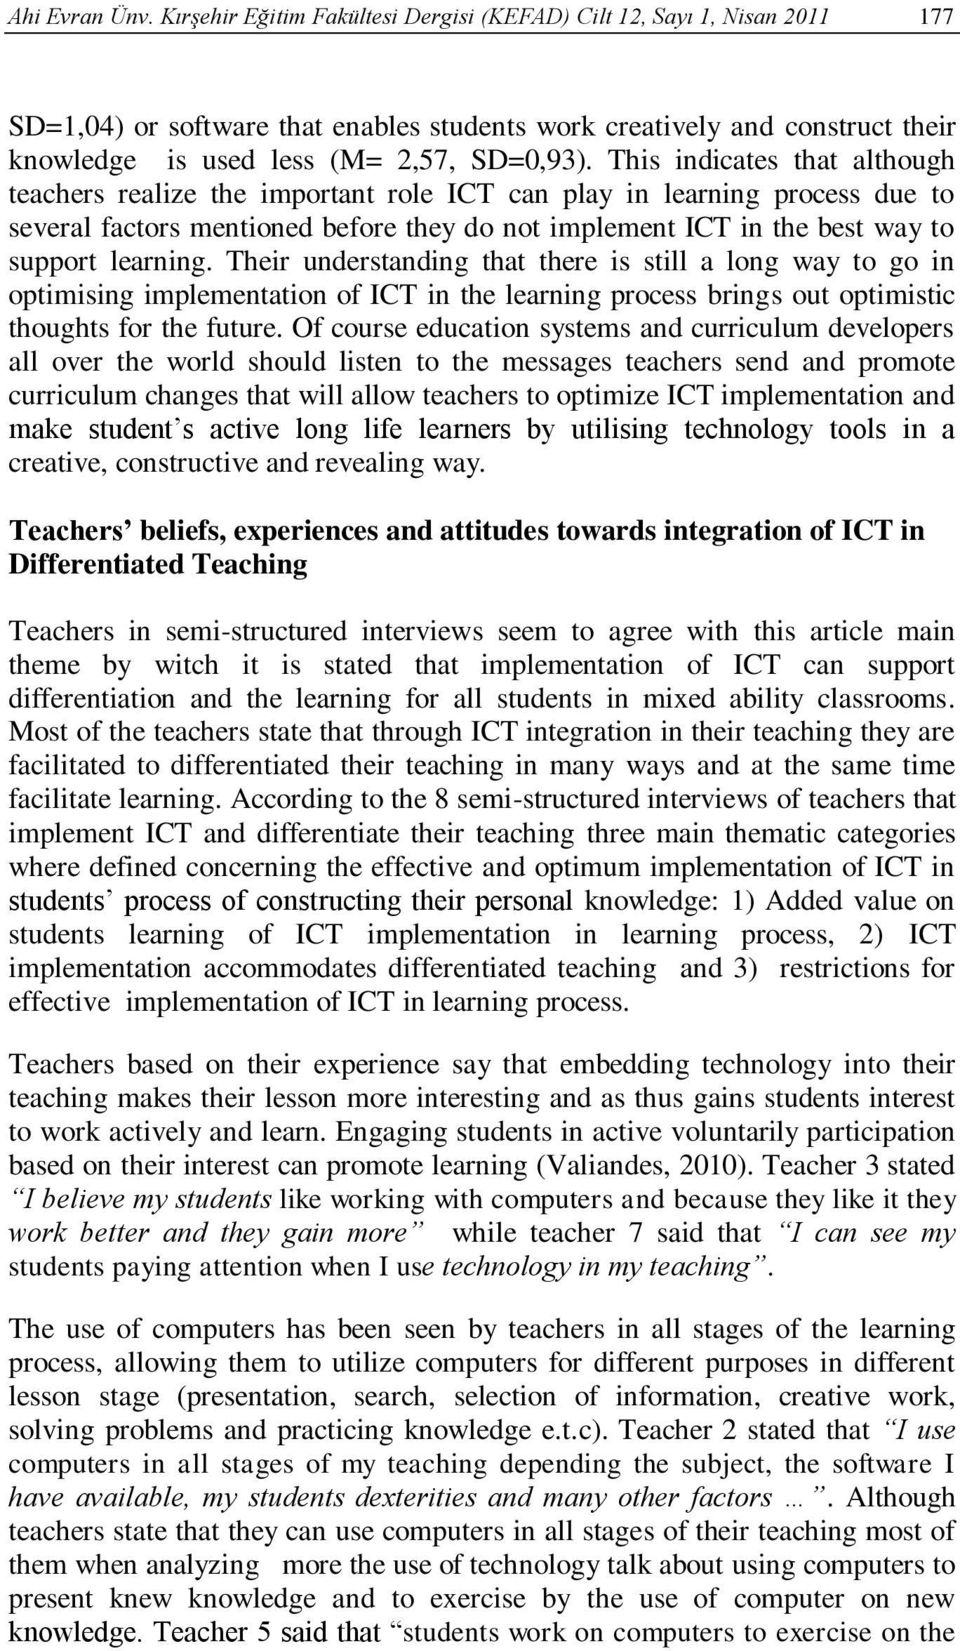 This indicates that although teachers realize the important role ICT can play in learning process due to several factors mentioned before they do not implement ICT in the best way to support learning.